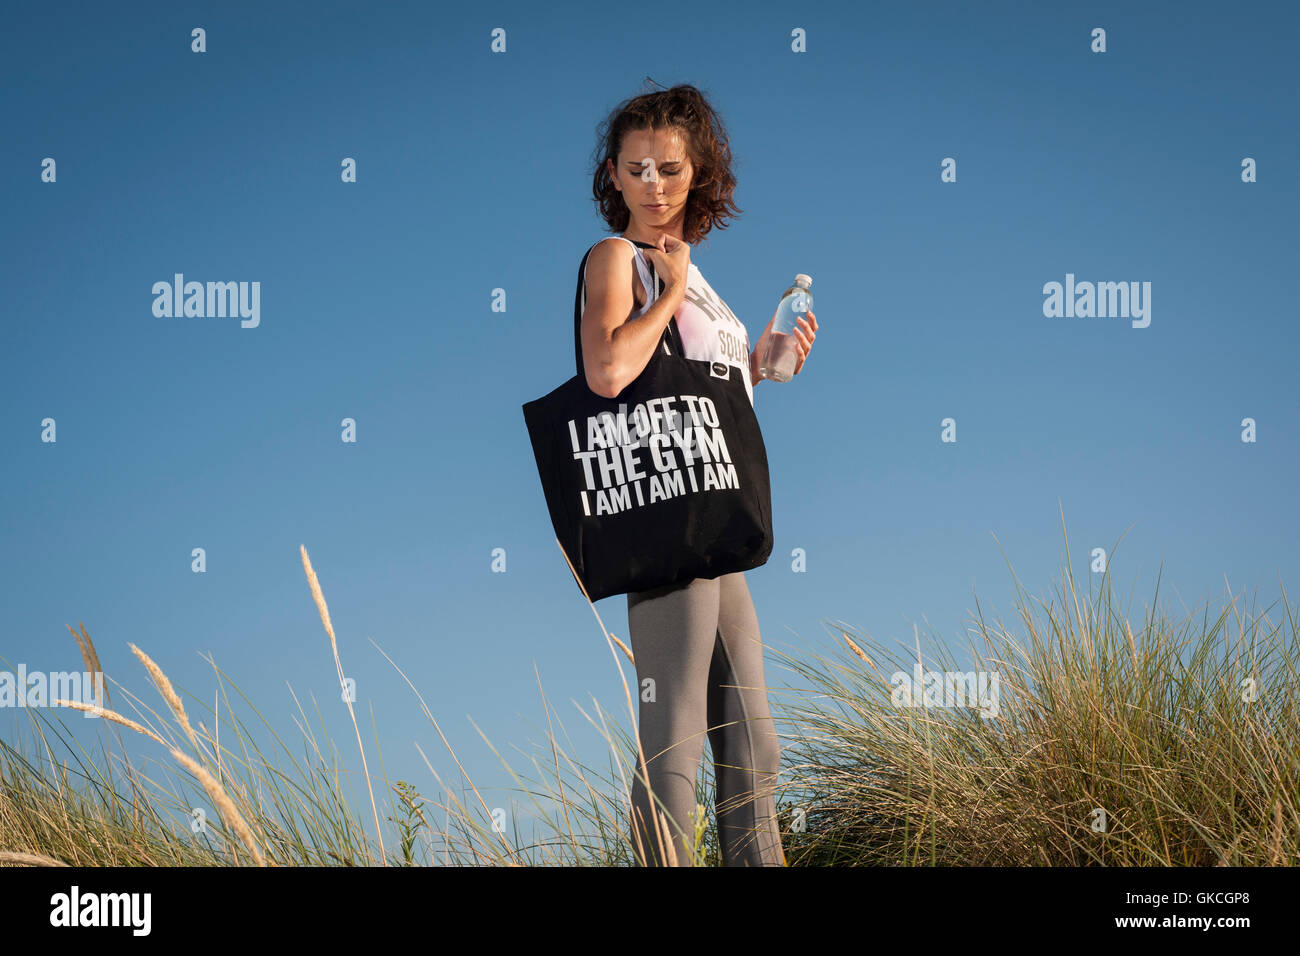 woman with water bottle and bag, I'm off to the gym I am I am - Stock Image